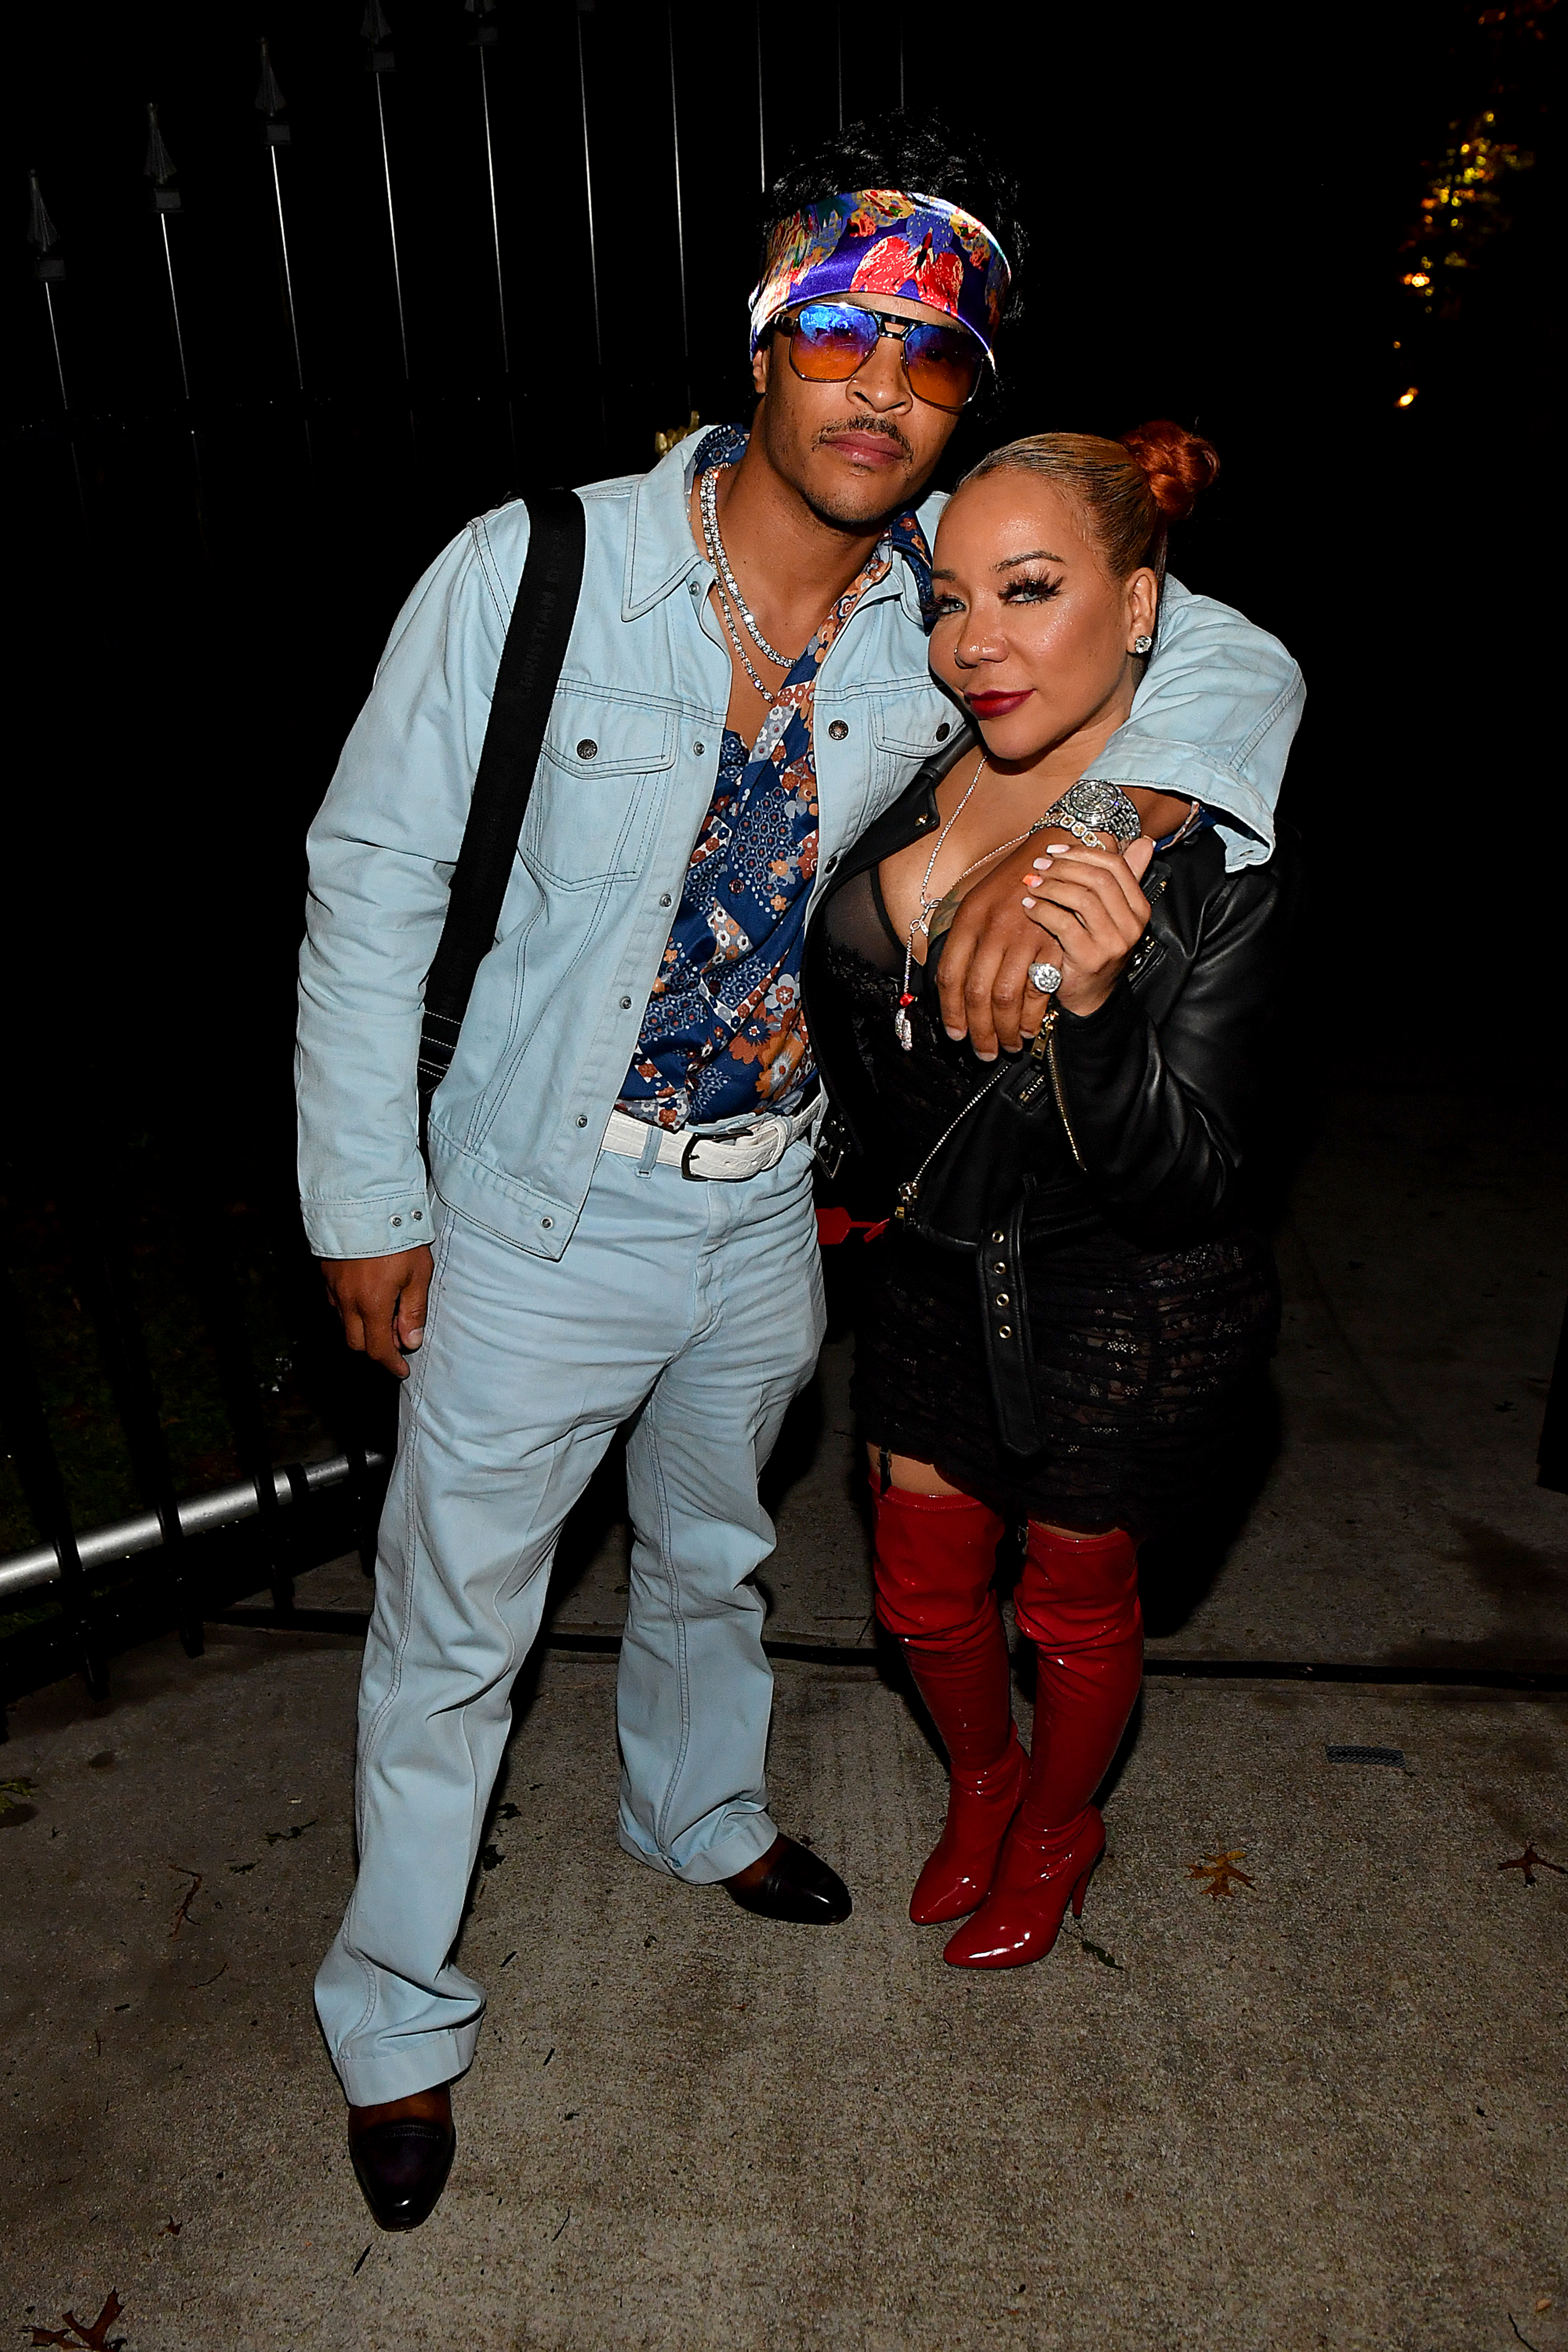 """T.I. and Tameka Dianne """"Tiny"""" Harris attend The Haunting Of Hopewell Hosted By Teyana Taylor, Iman Shumpert, Lori Harvey And Lala Anthony on October 31, 2020 in Atlanta, Georgia."""